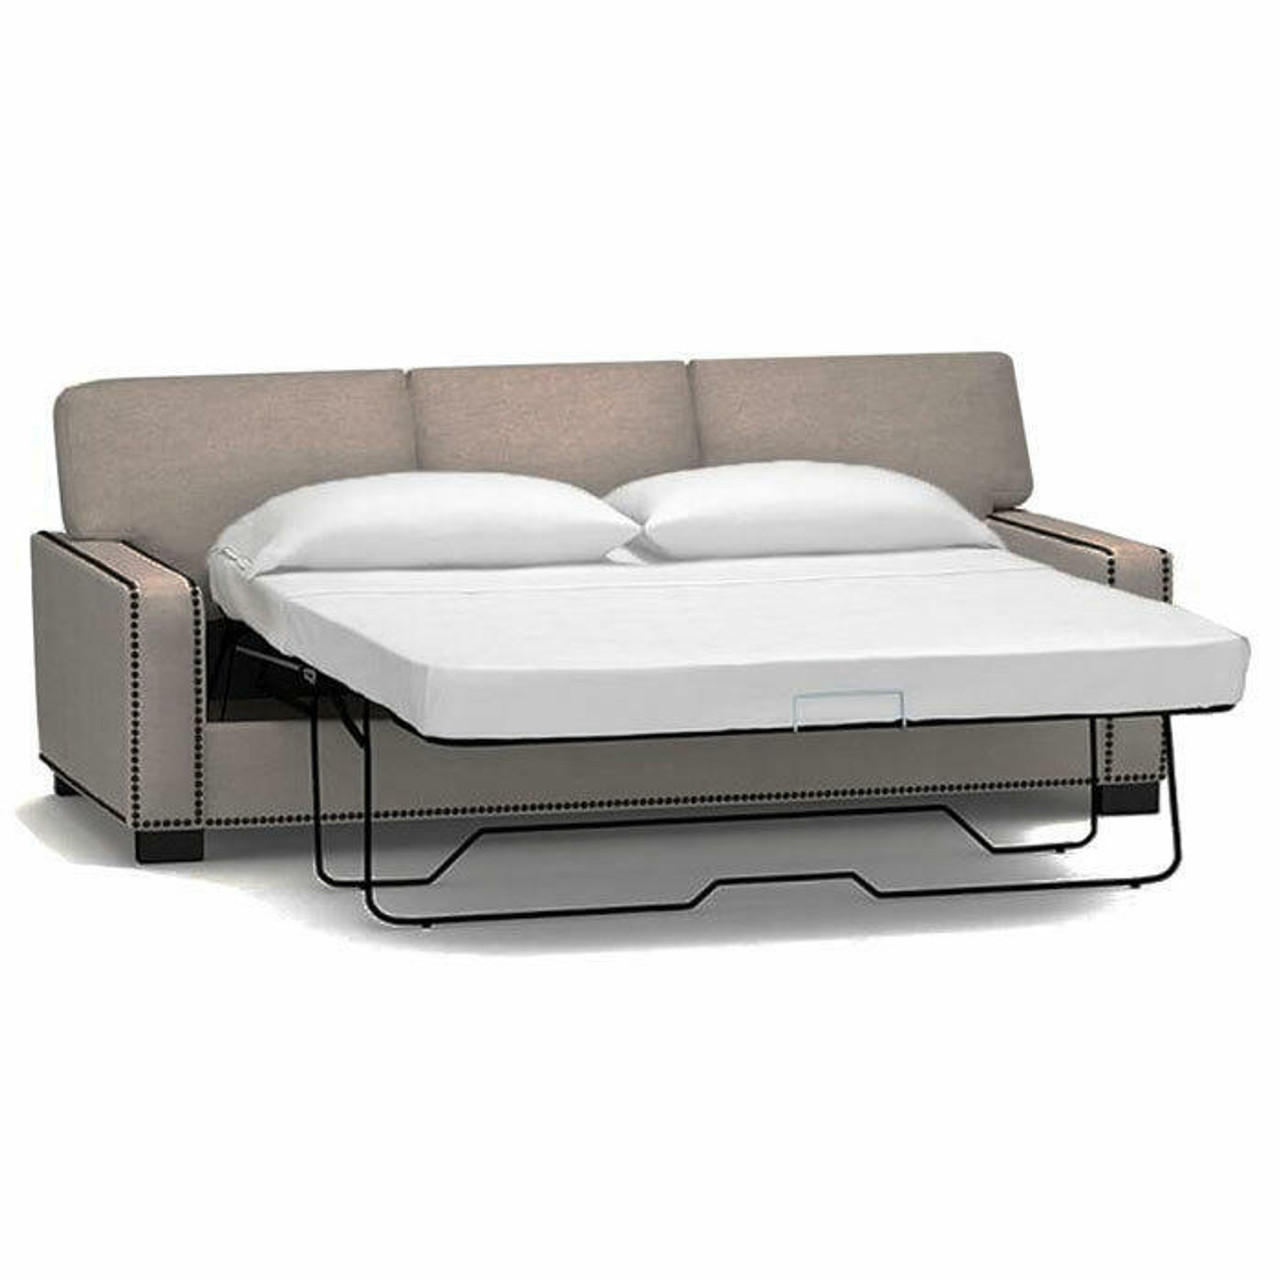 Bargoose Bargoose T-180 Sleeper Sofa Fitted Sheets